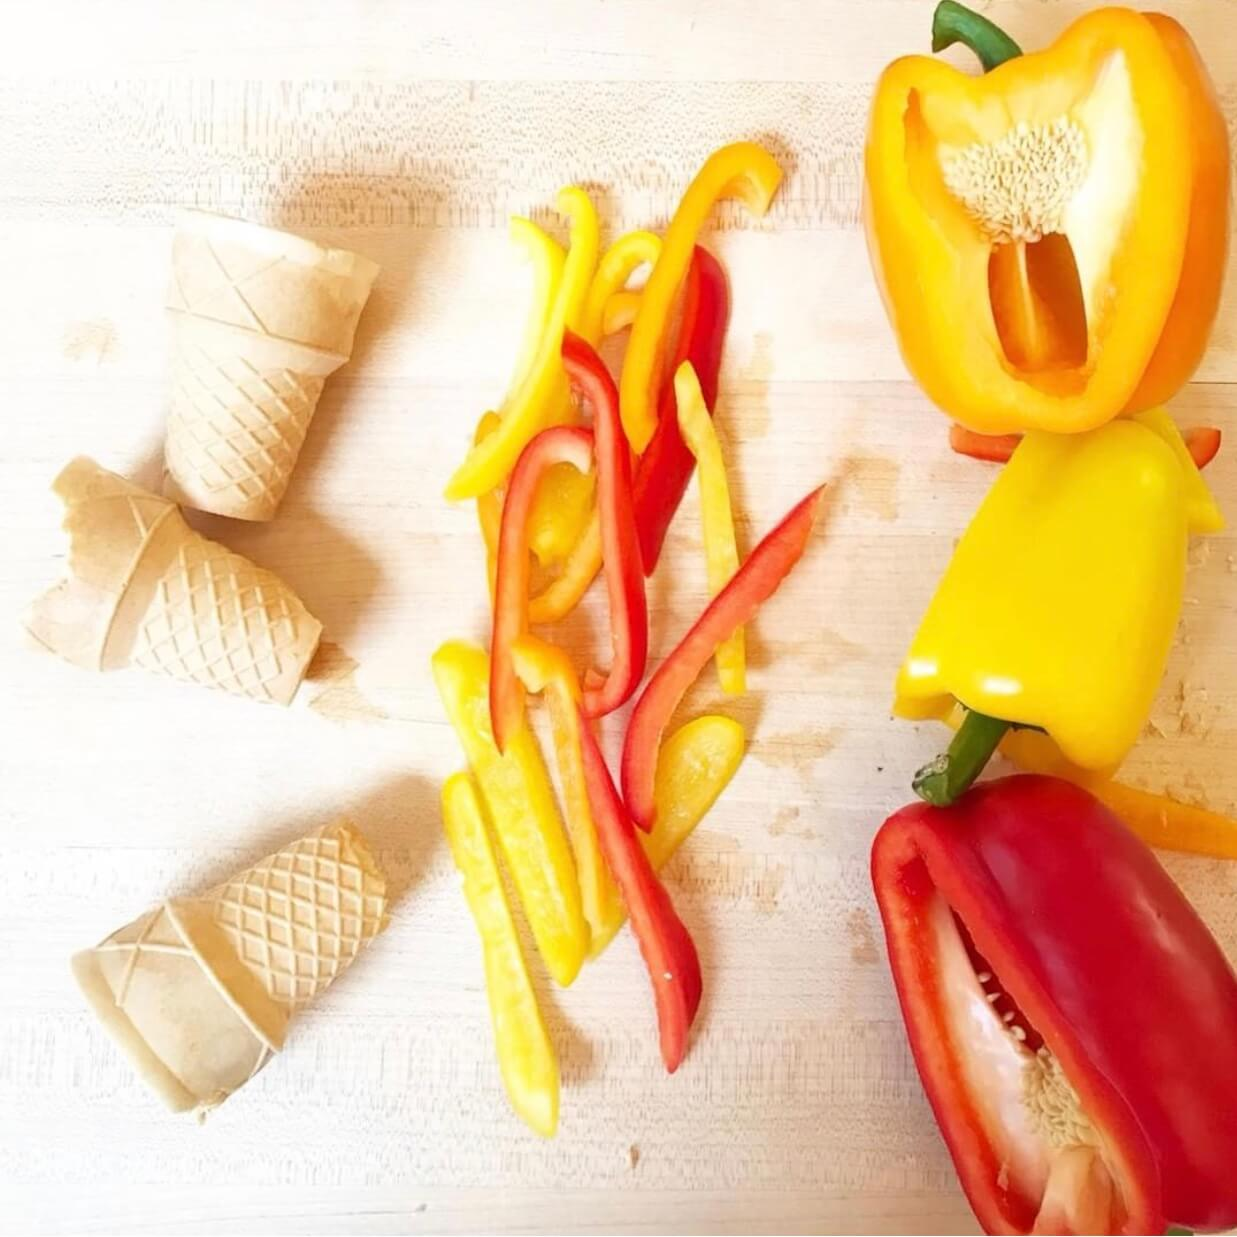 Three ice cream cones, colorful yellow, red and orange bell peppers both sliced and hole prepping to become an olympics torch snack.